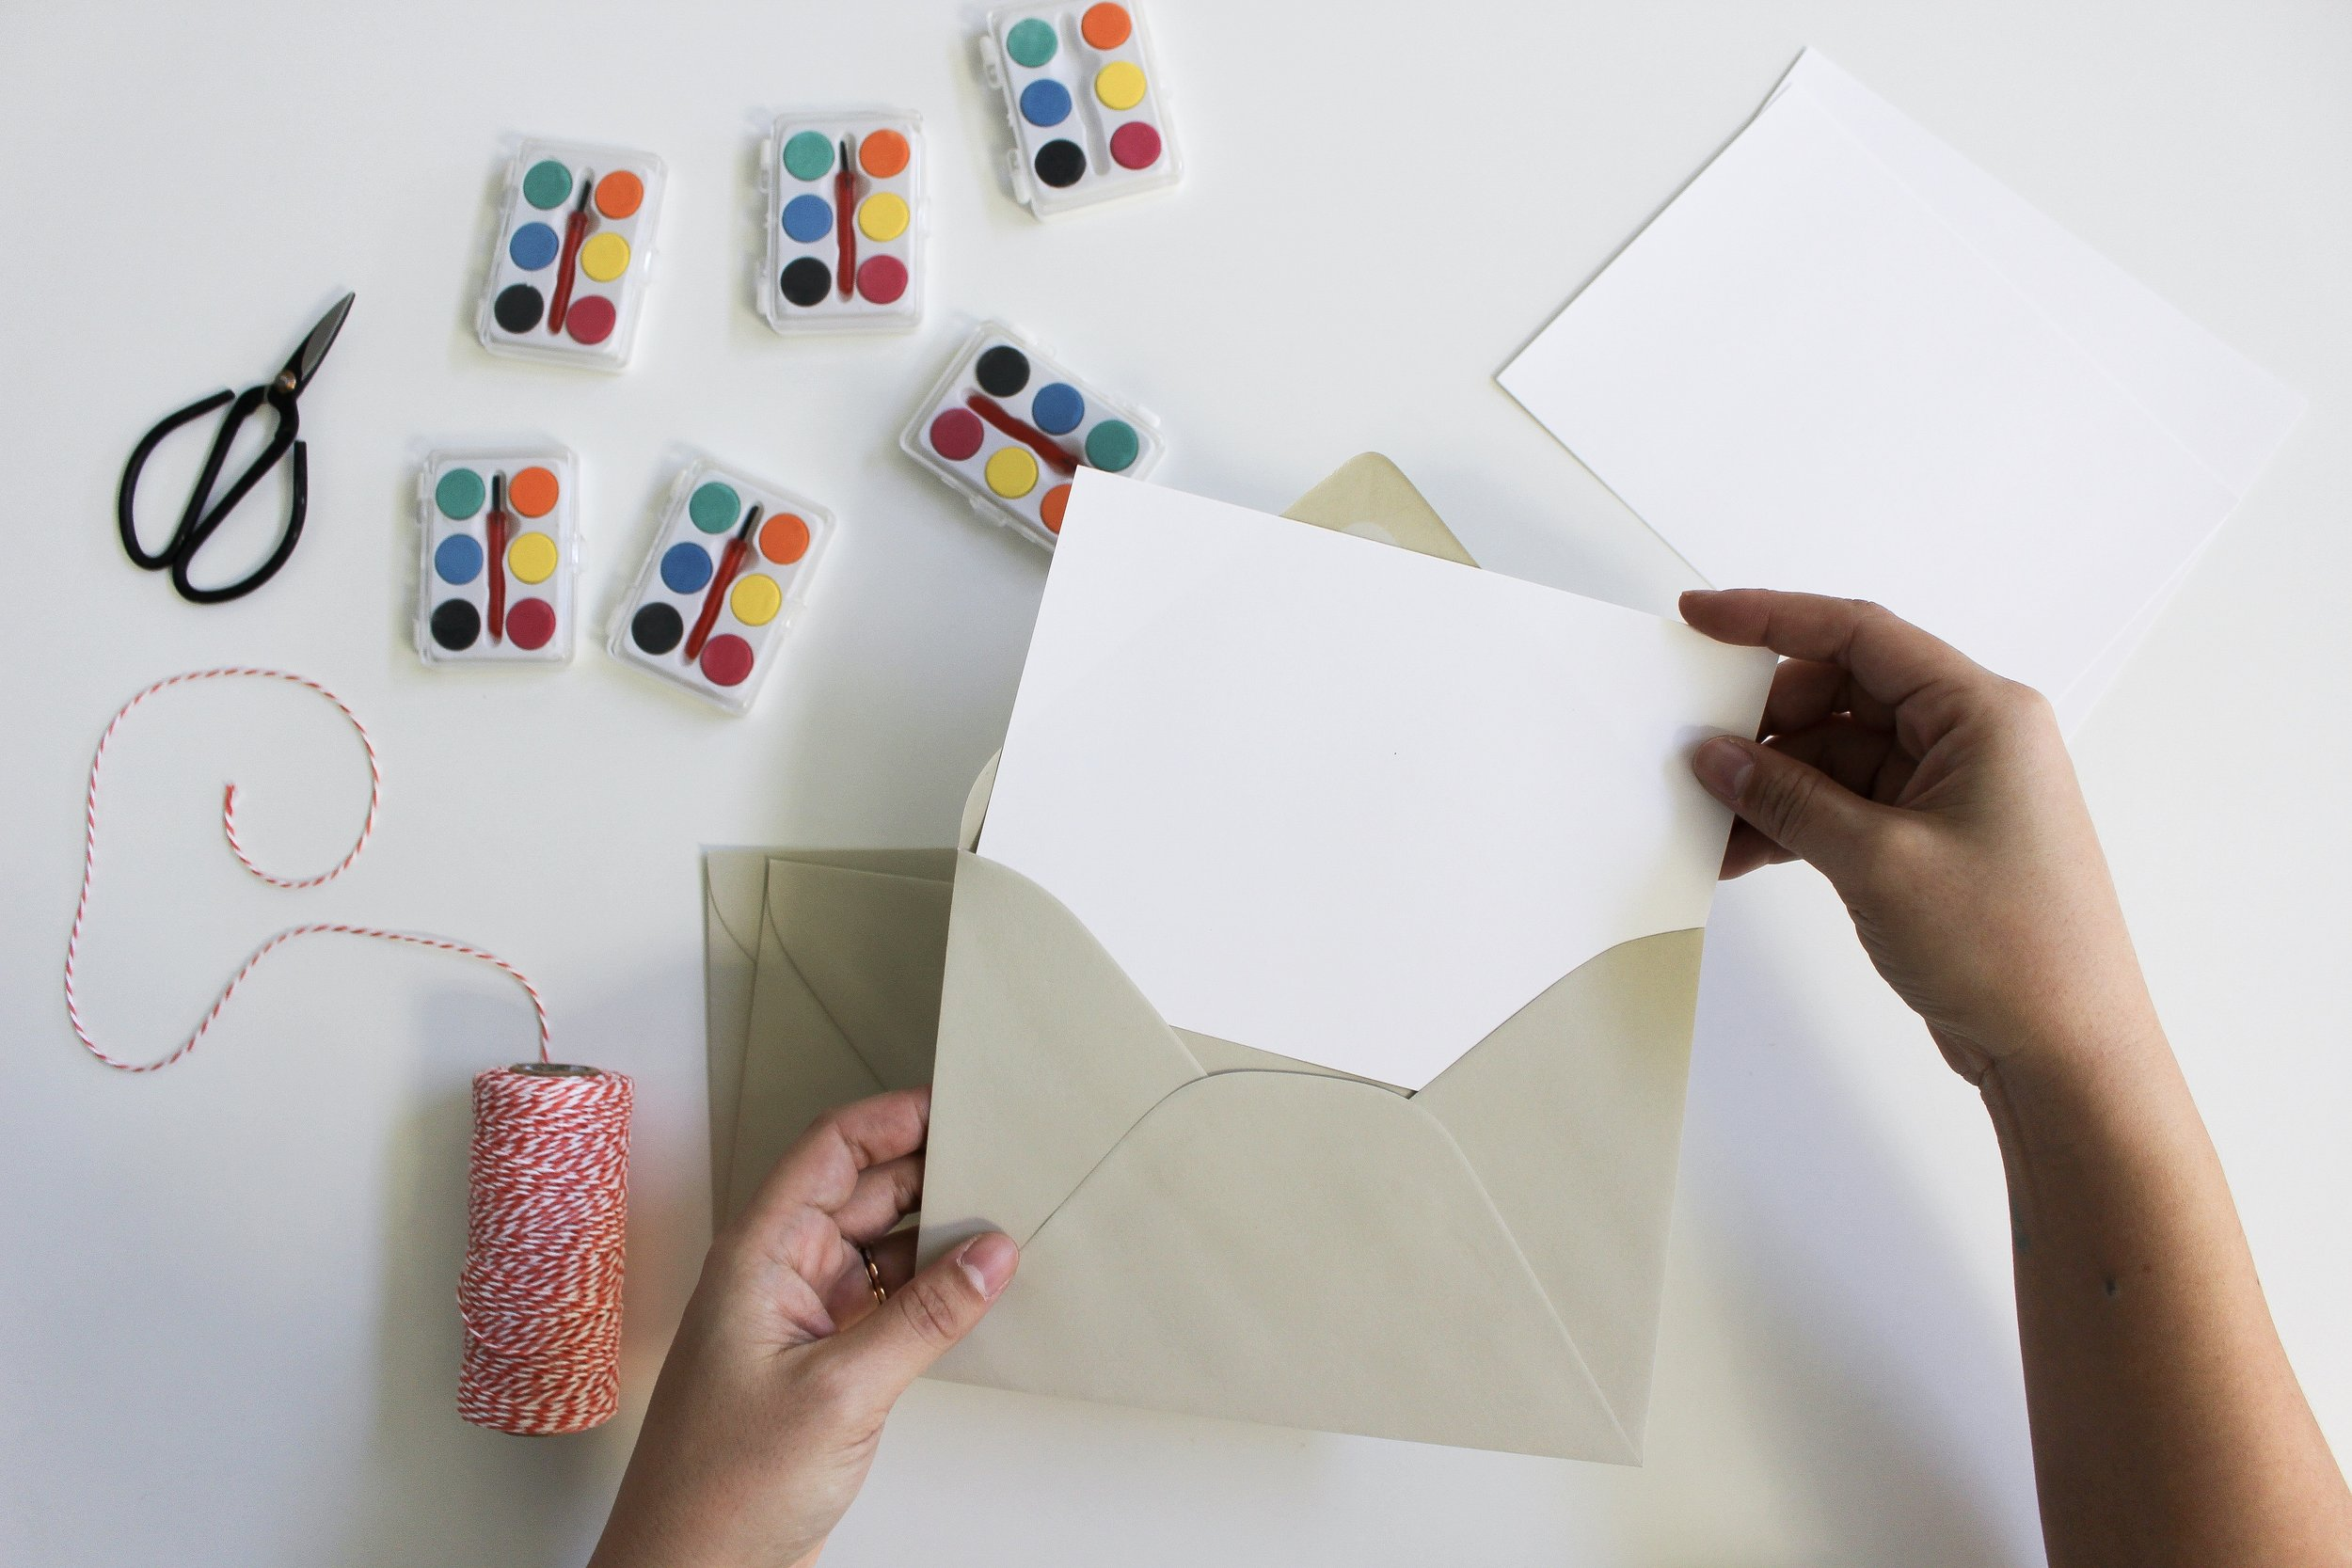 The Paper + Craft Pantry Blog: Putting our card into an envelope to gift.